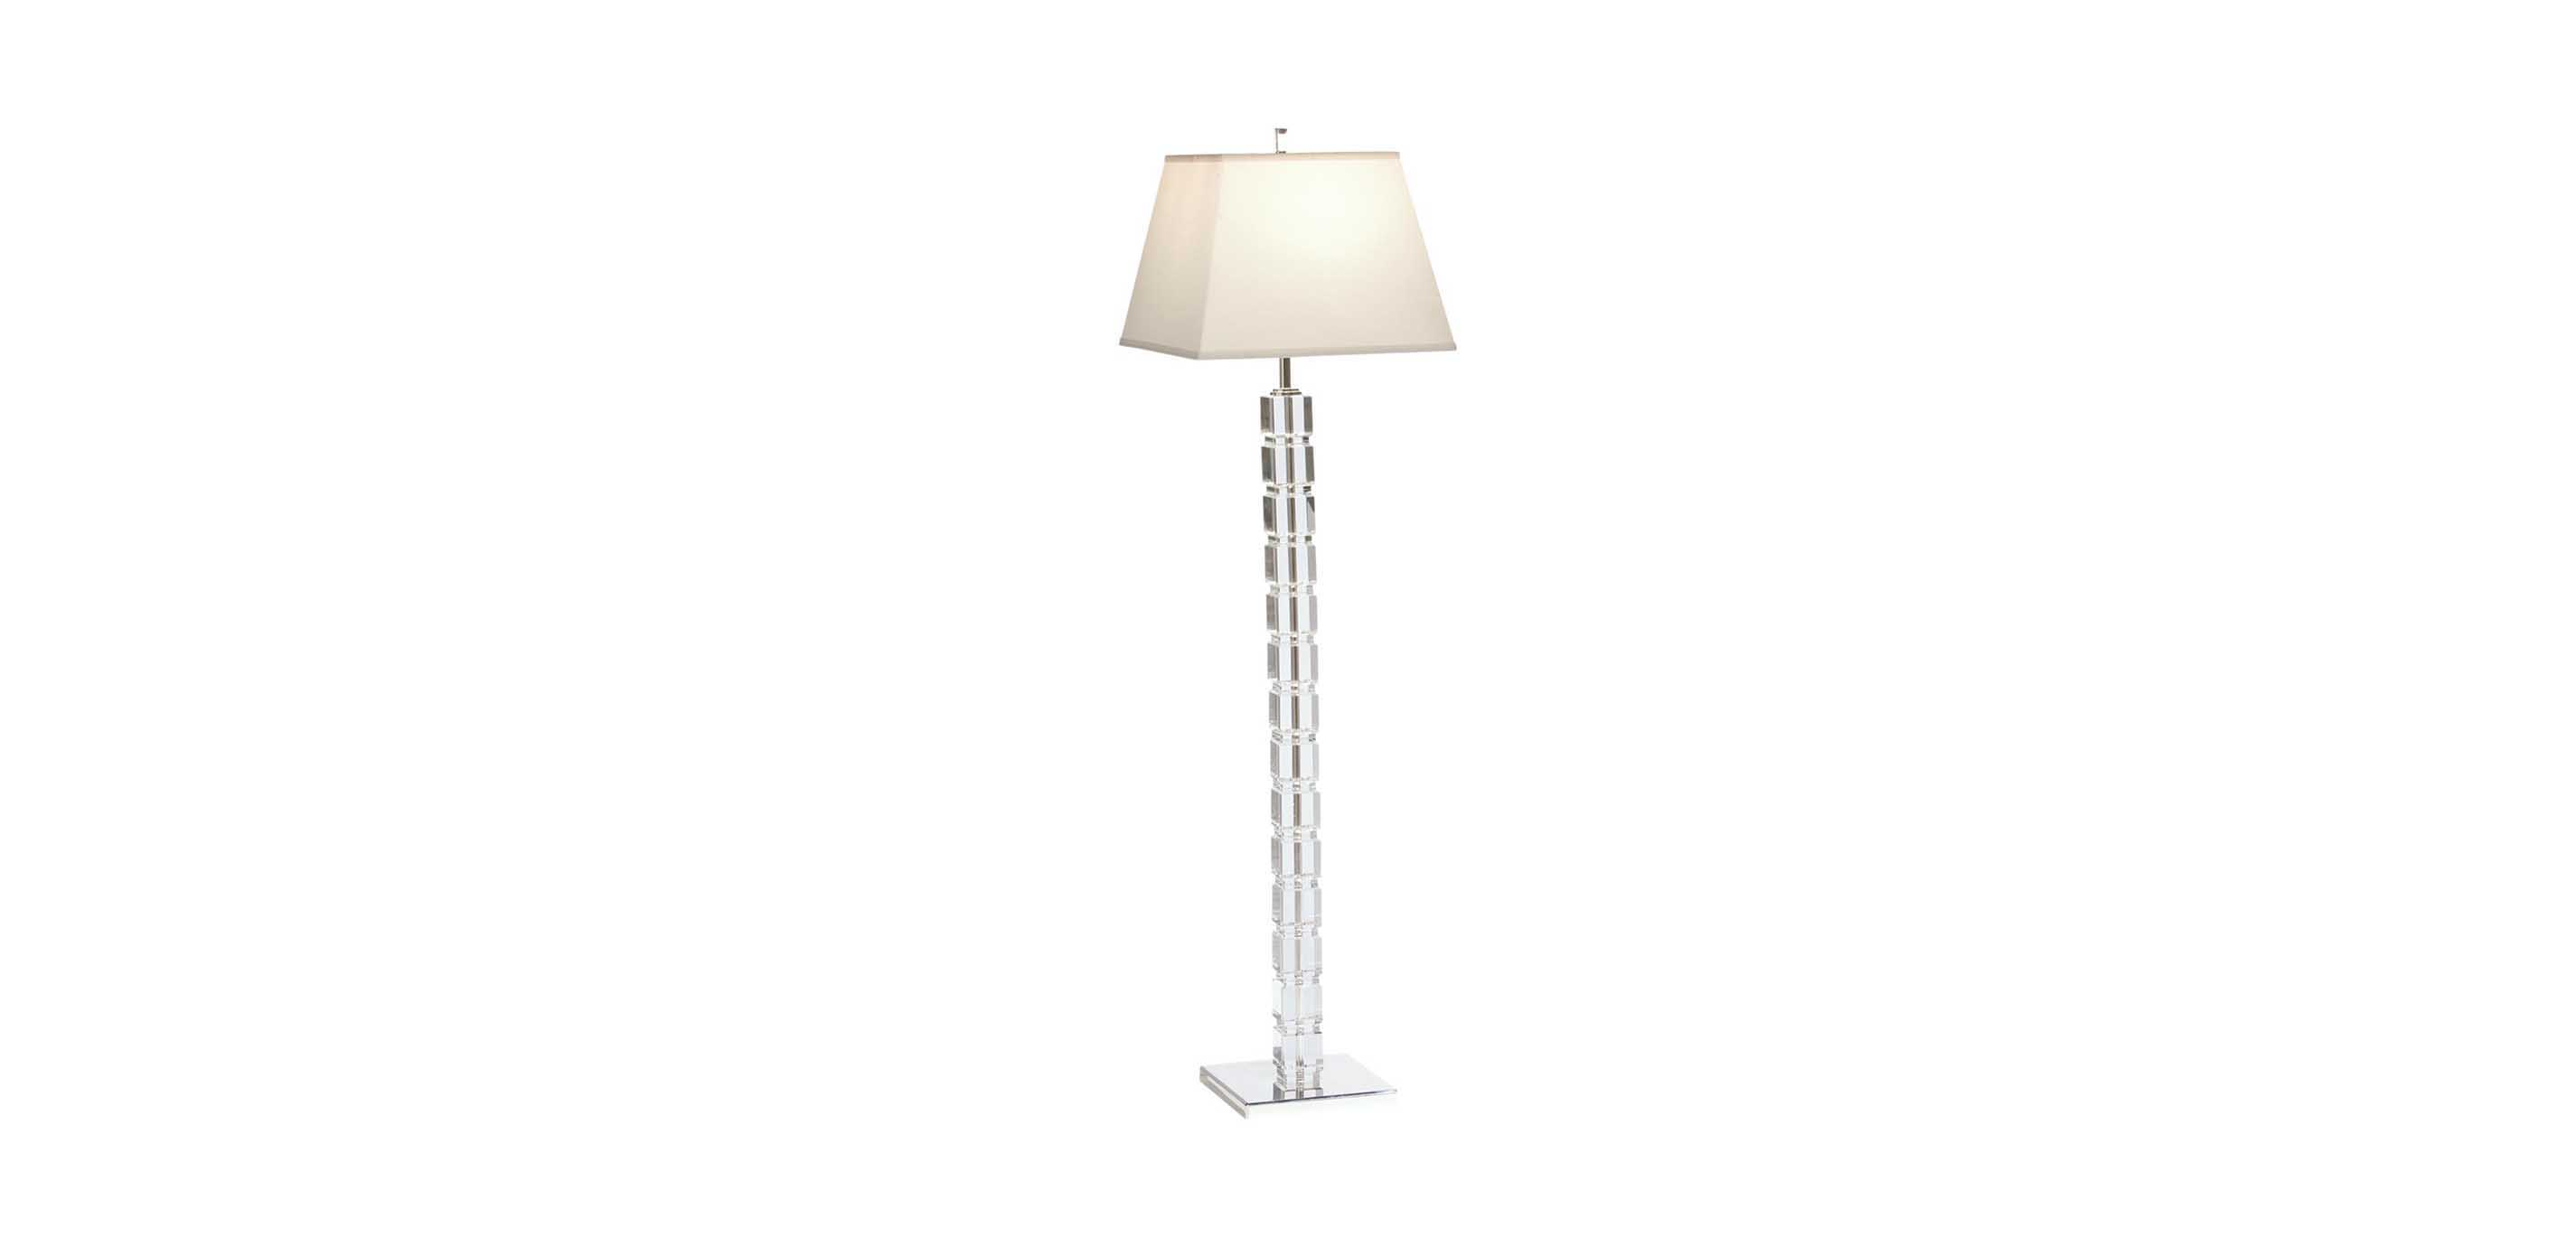 Crystal blocks floor lamp floor lamps ethan allen images crystal blocks floor lamp largegray mozeypictures Choice Image